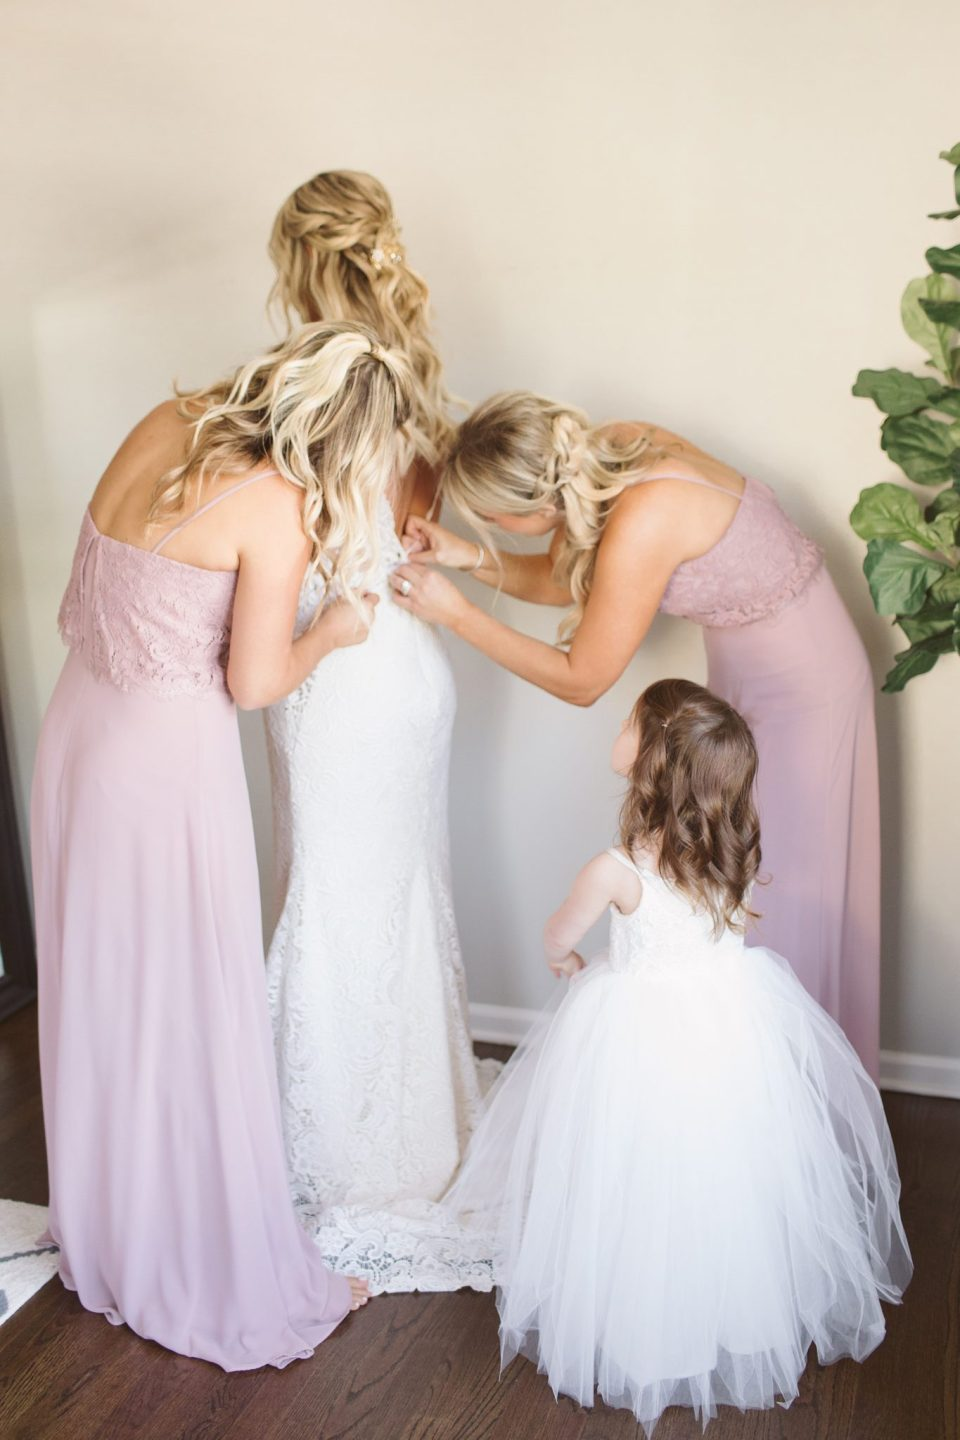 flower girl watches bride get into wedding dress photographed by Ashley Mac Photographs for Rumson Country Club Riverhouse wedding